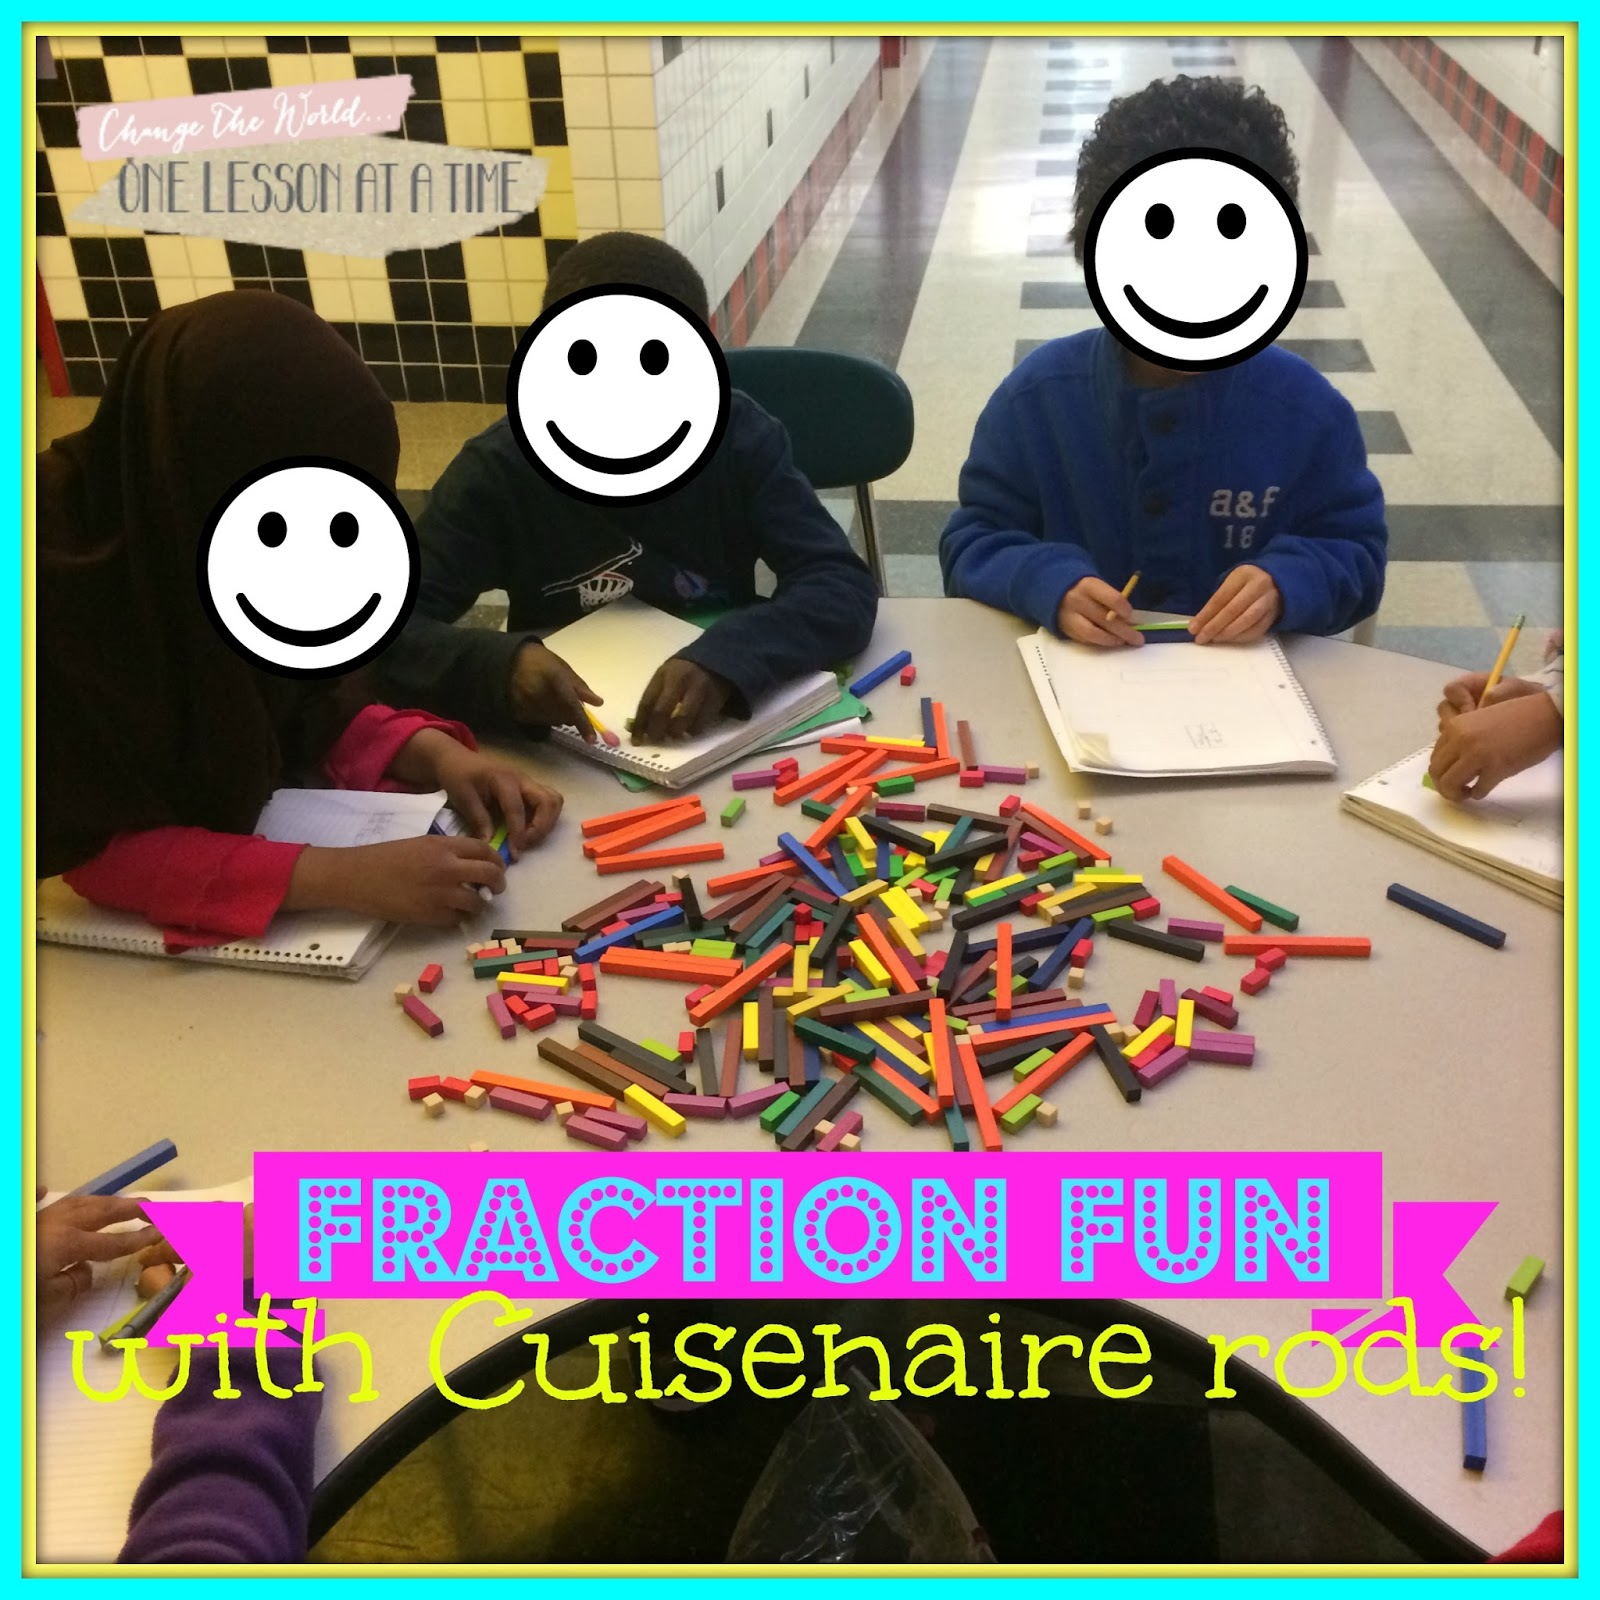 Blair Turner From One Lesson At Time Does A Great Job Explaining How To Use  Cuissinaire Rods (and Pattern Blocks) To Teach Fractions